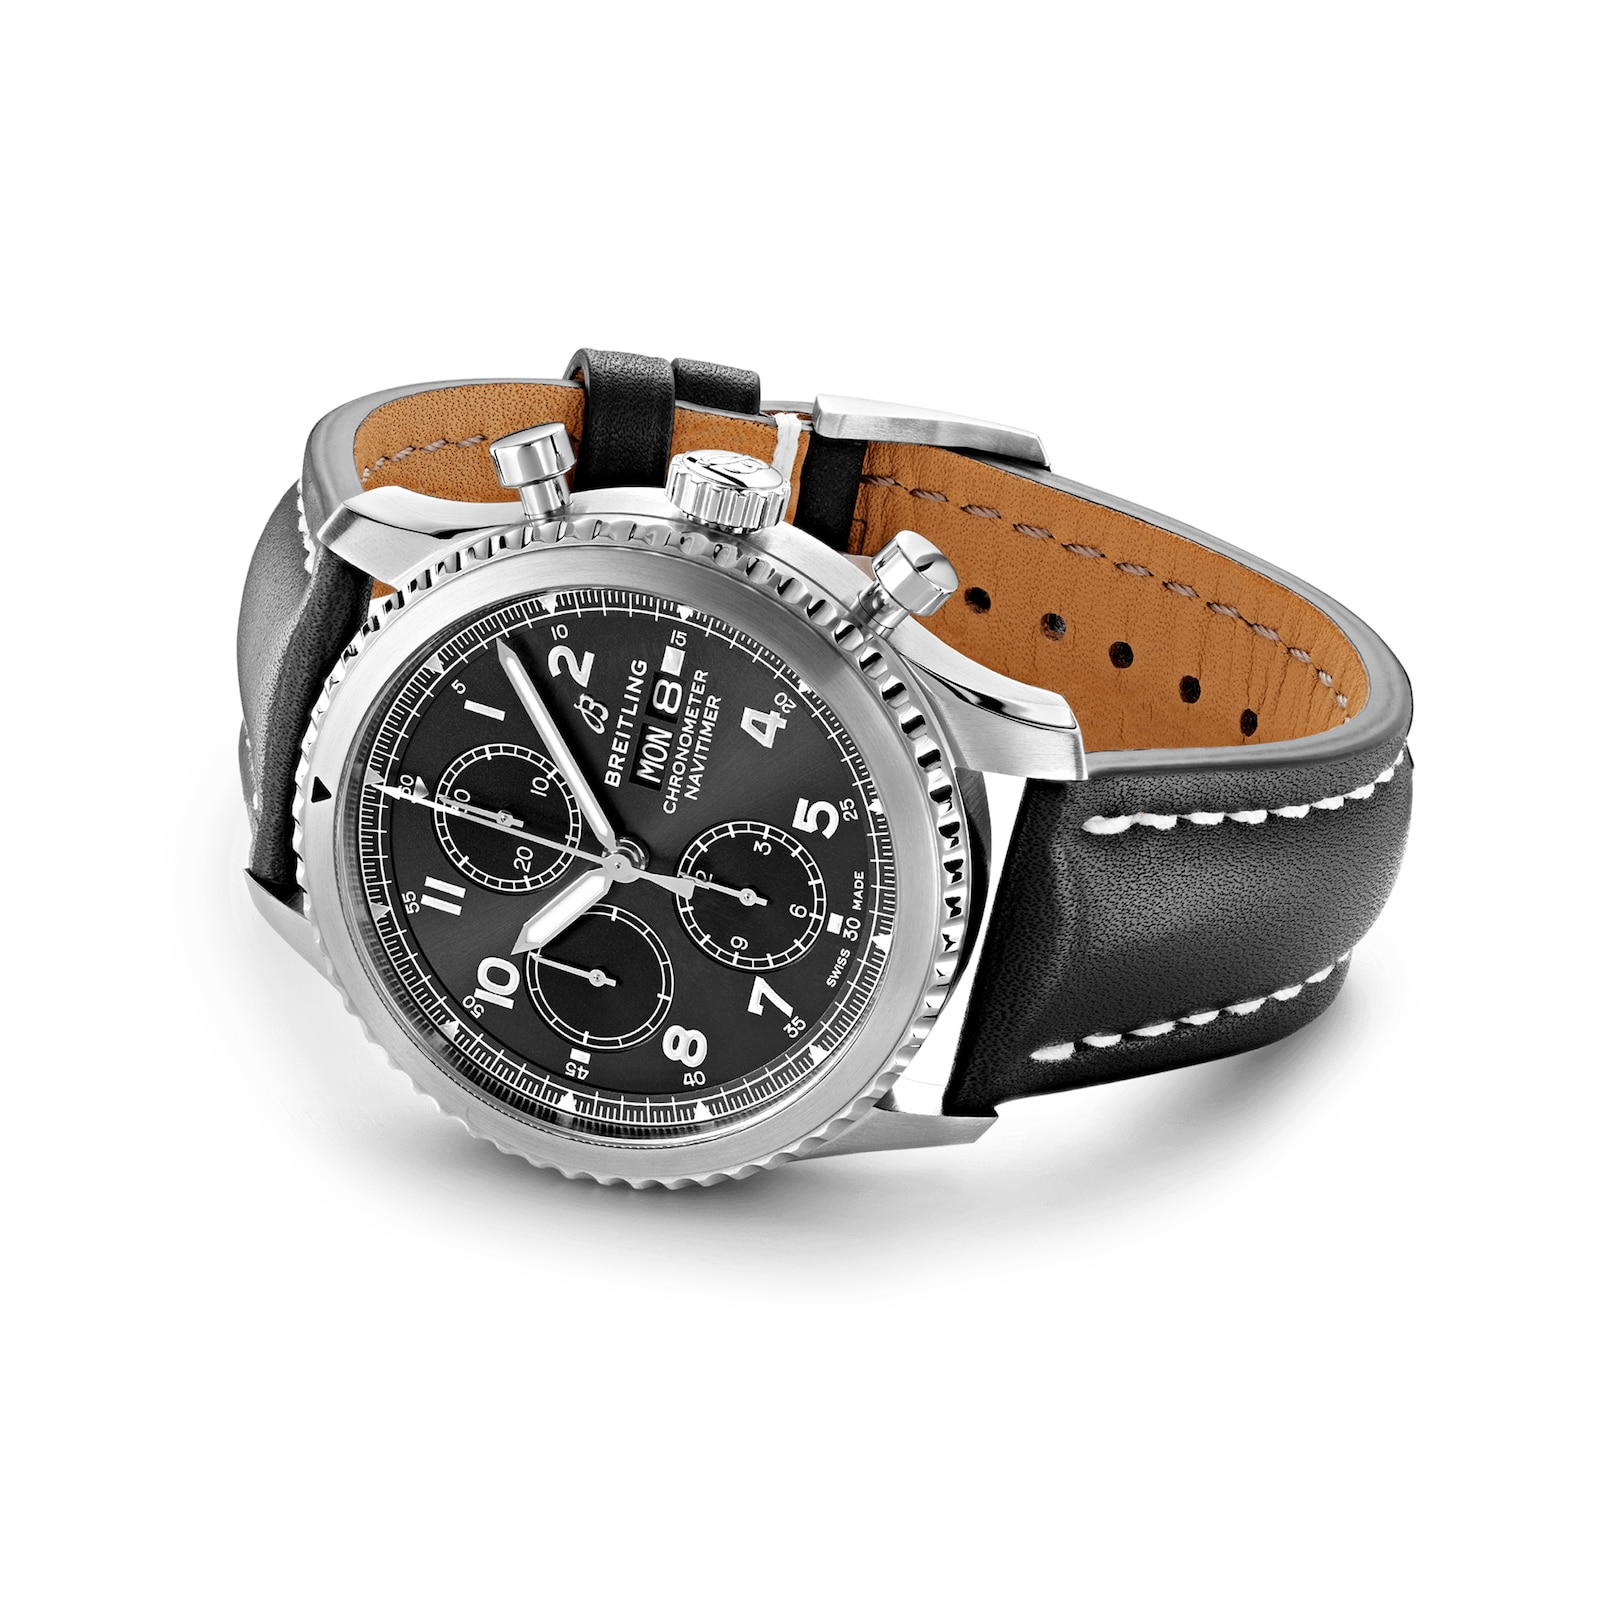 Breitling Aviator 8 Chronograph 43 Automatic Mens Watch